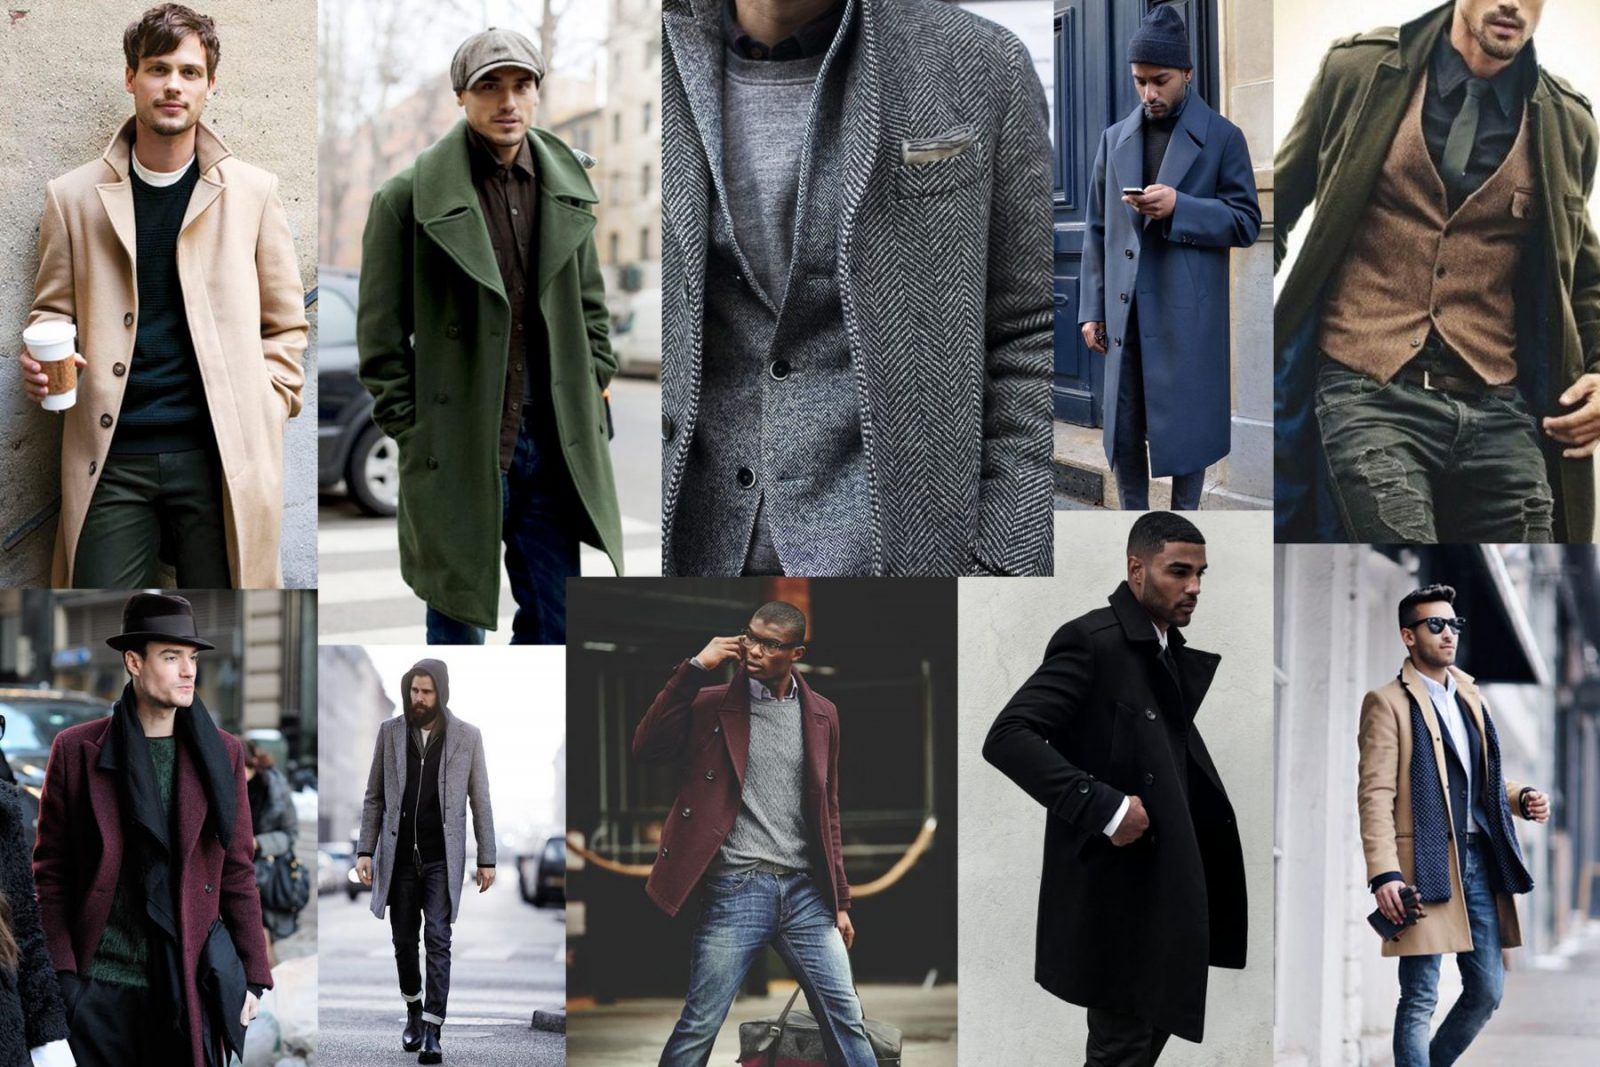 Classic coat: what to wear and what to look for when choosing